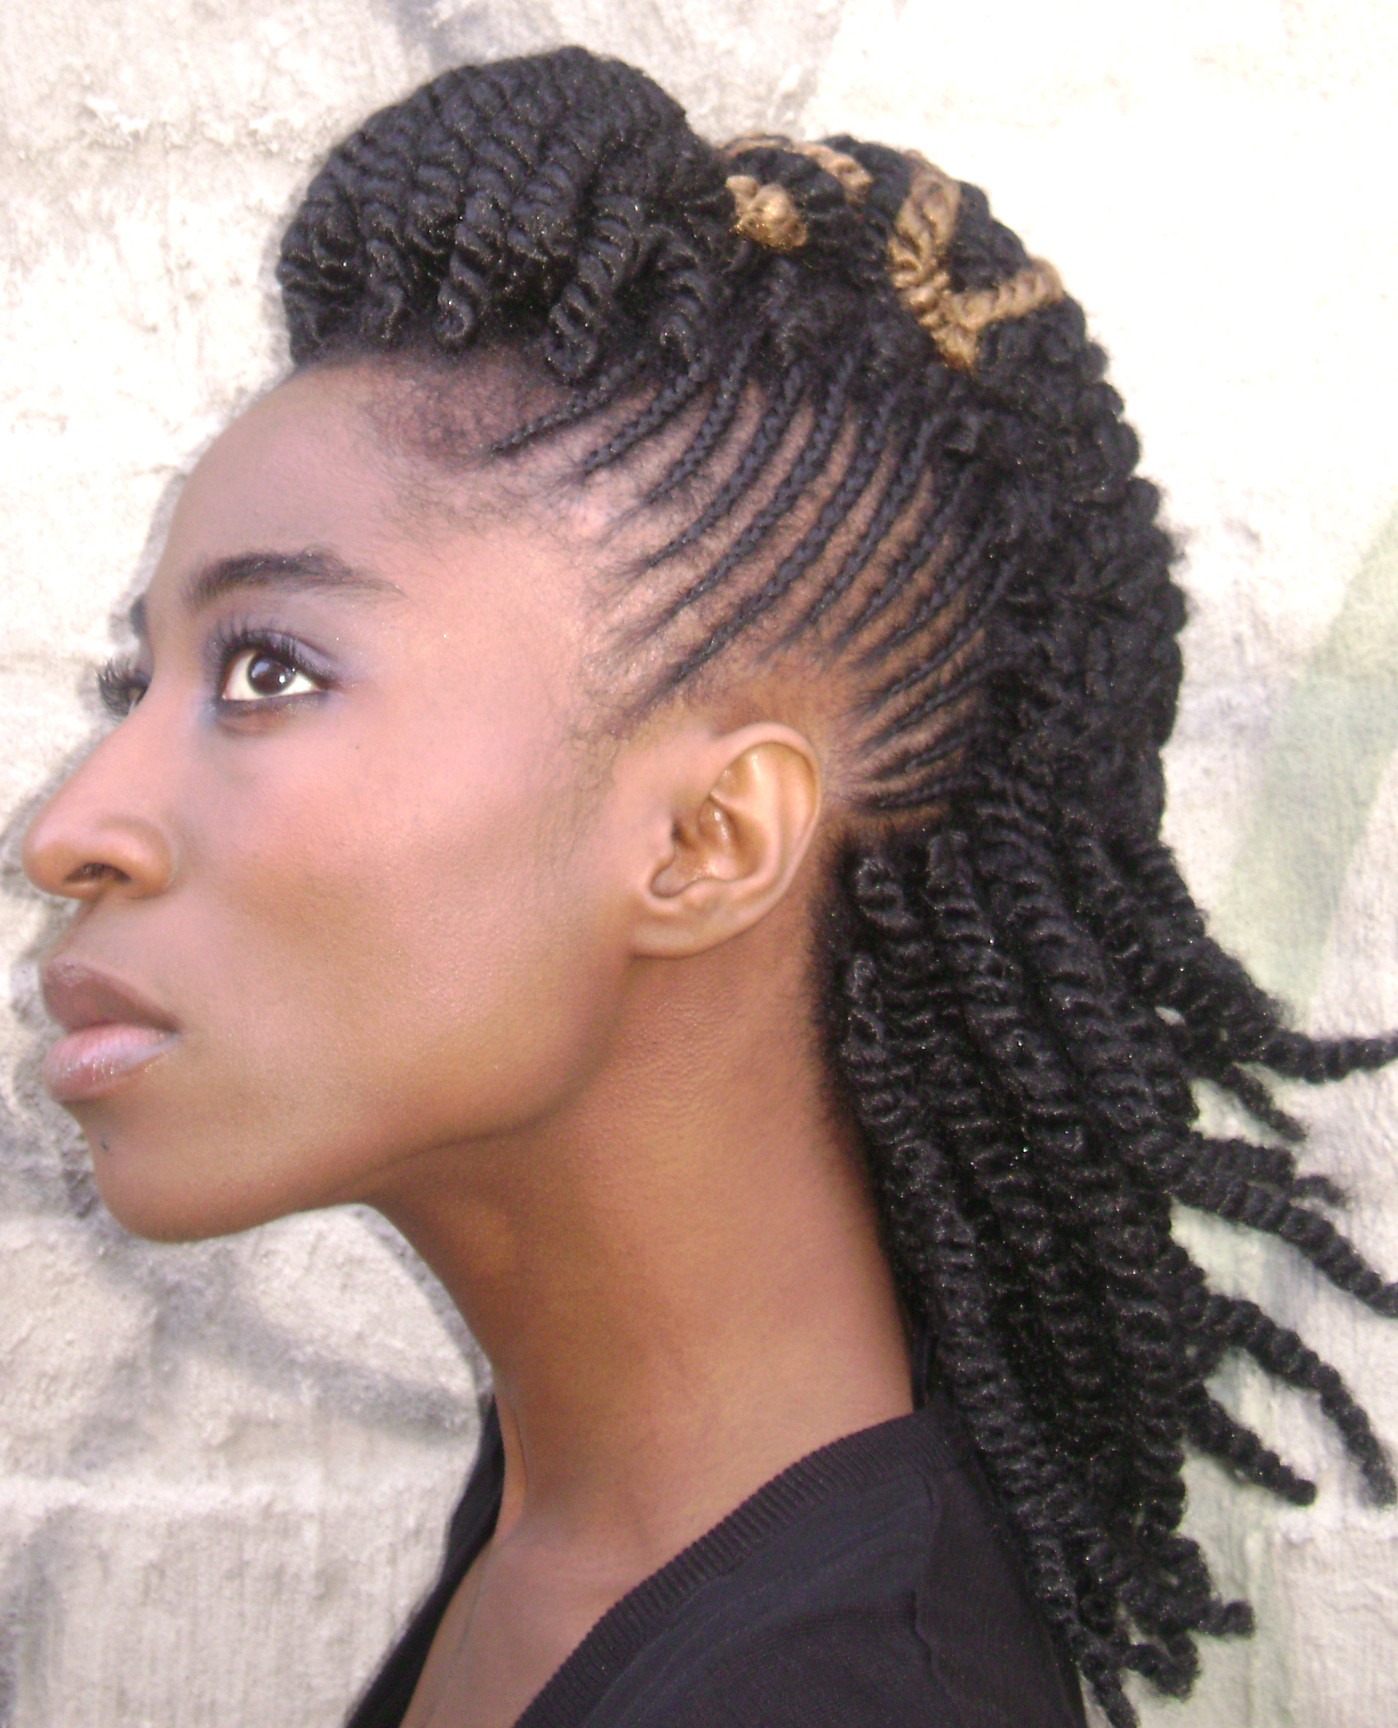 Best ideas about Black Braided Updo Hairstyles . Save or Pin Hairstyle for african american women Hairstyle for black Now.